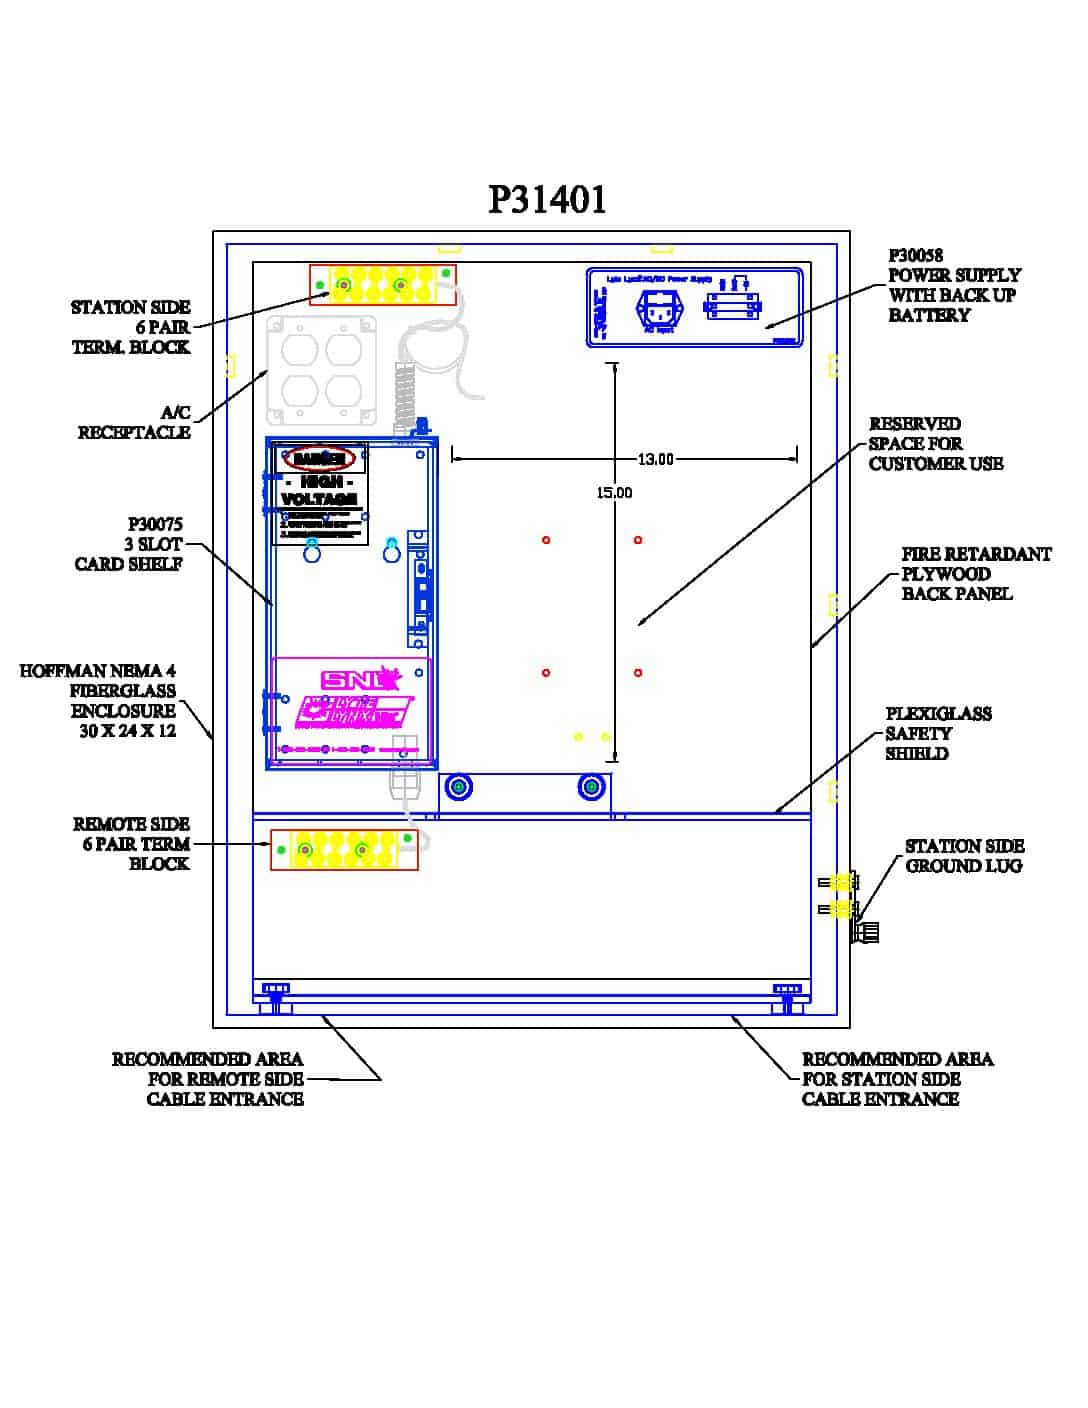 P31401 Turnkey Protection Packages – 3 slot PDF thumbnail